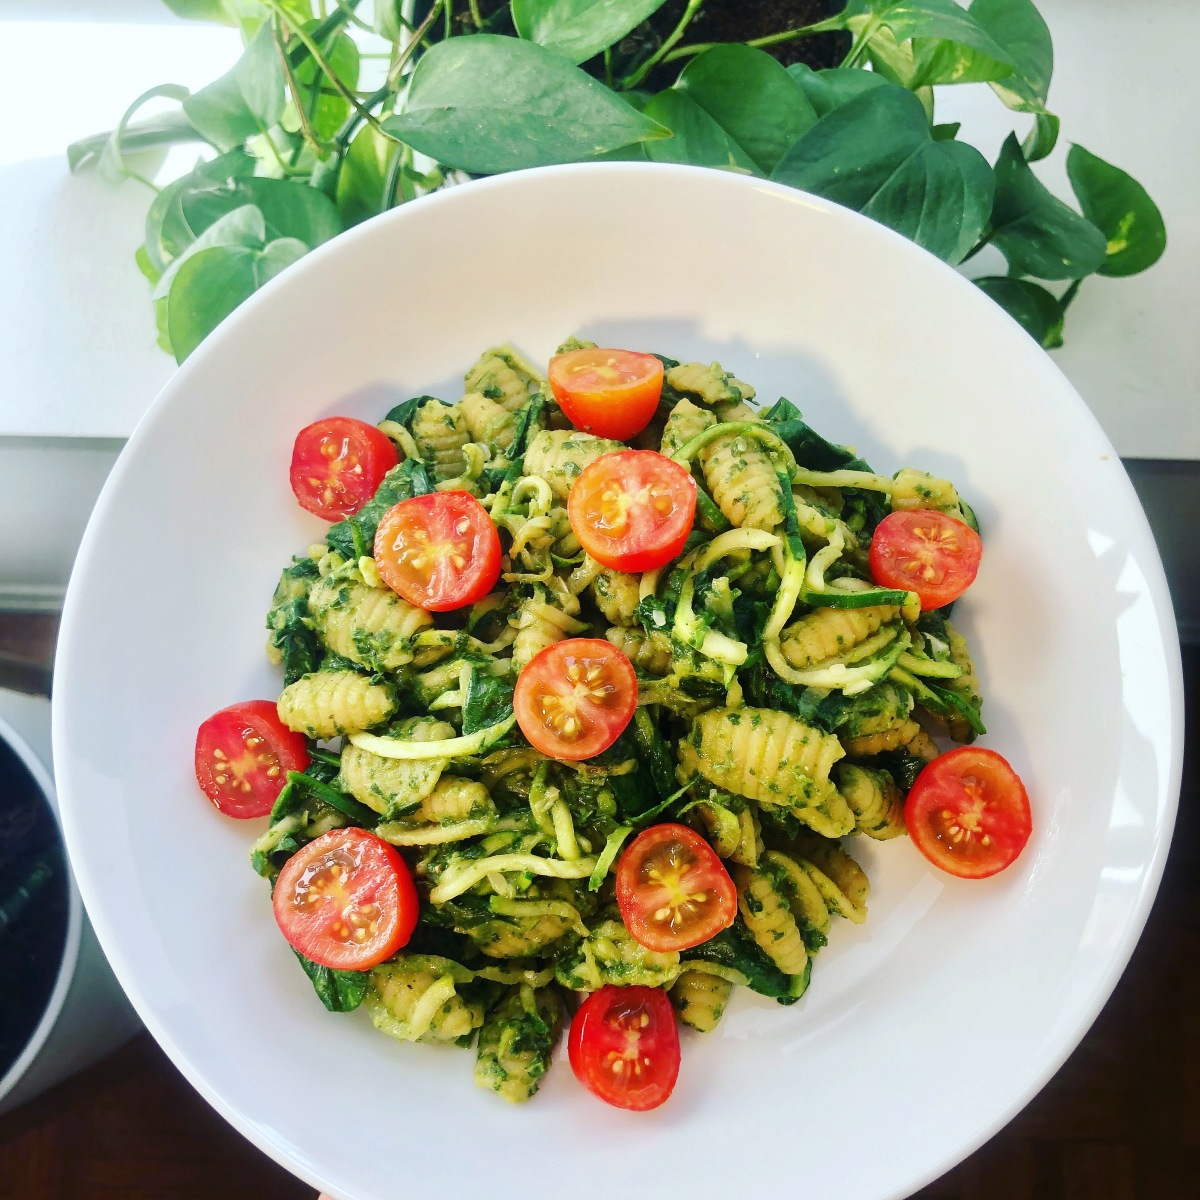 Chickpea Gnocchetti with Creamy Avocado Pesto Sauce